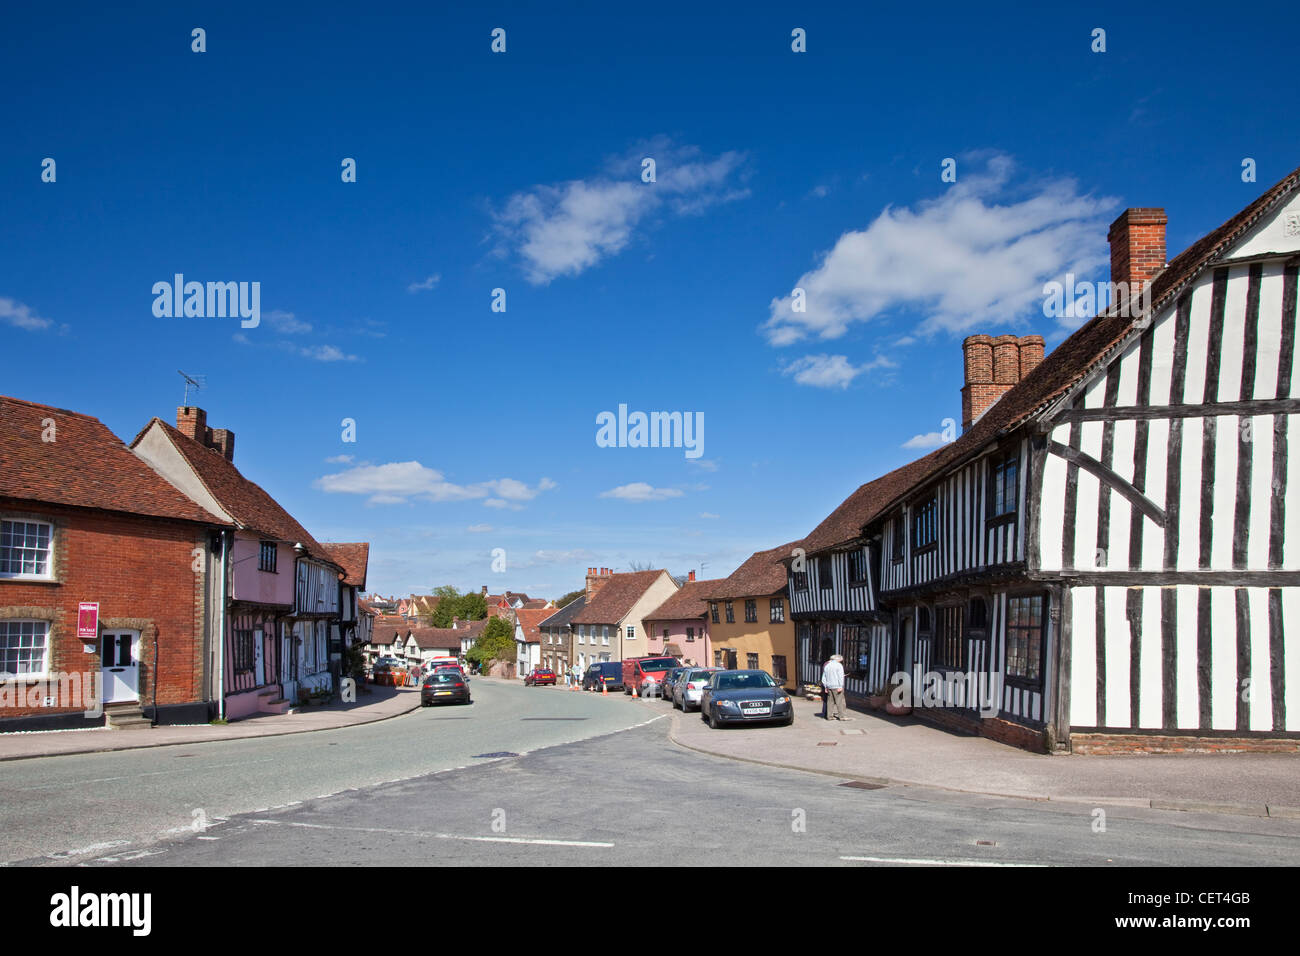 Half-timbered medieval buildings in the historic village of Lavenham. Lavenham gained great prosperity in the 15th - Stock Image